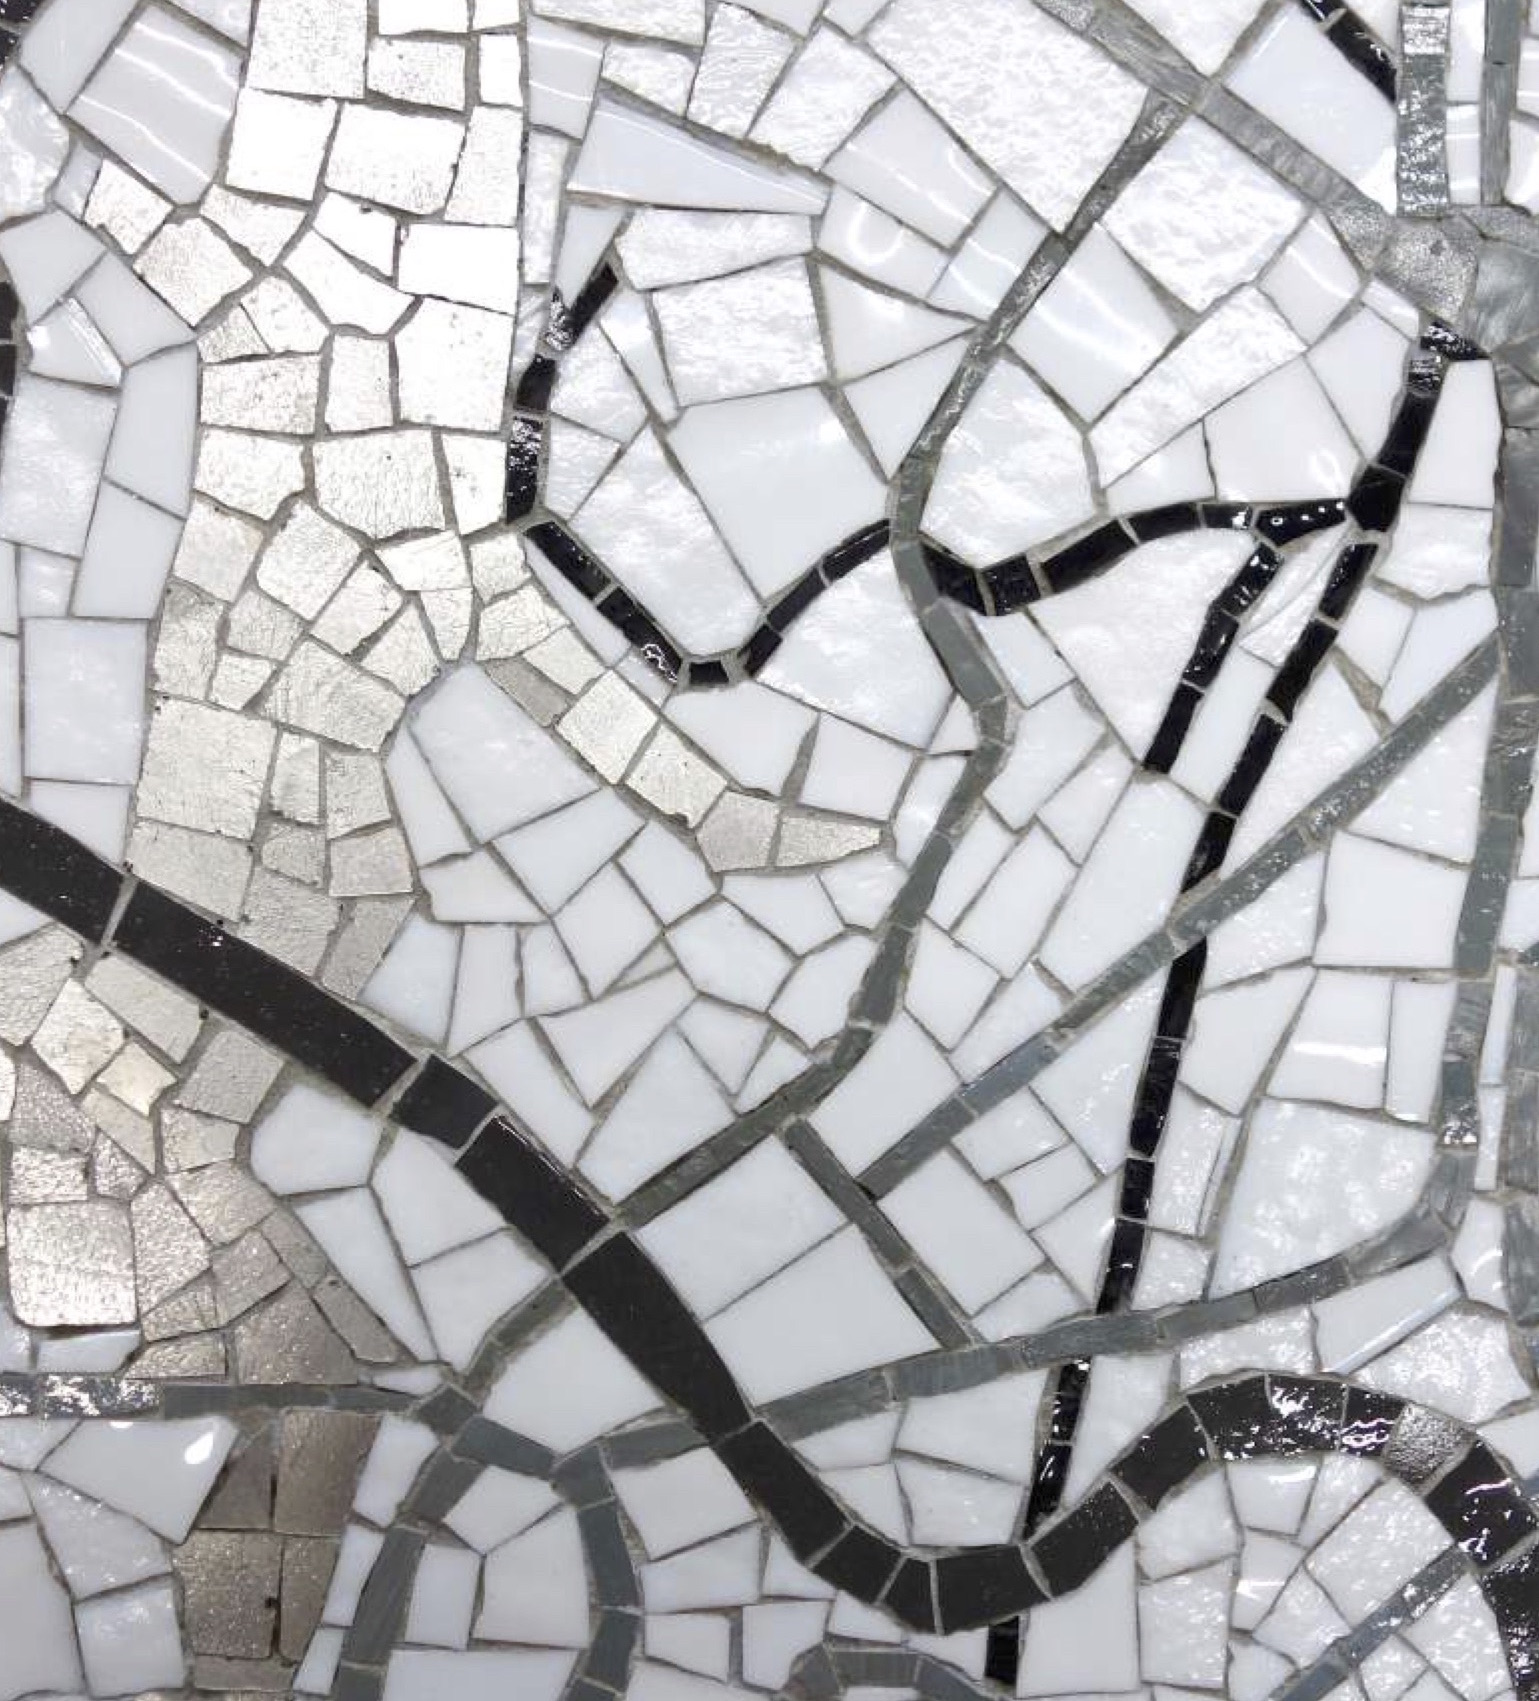 The map will be brought to life with a hand crafted array of iridescent glass mosaic tiles.